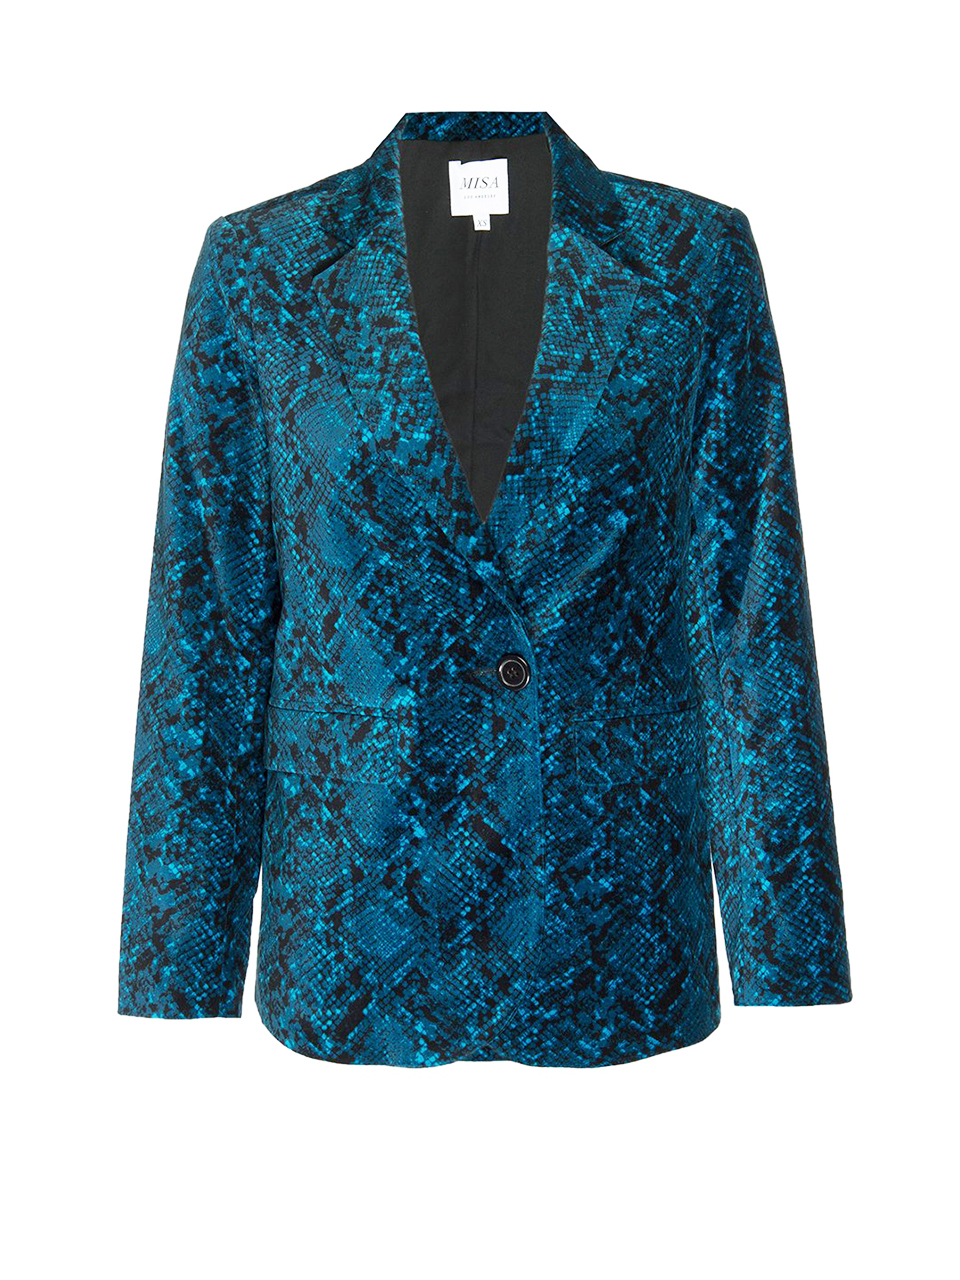 MISA Catroux Jacket in Teal Snake Product Shot